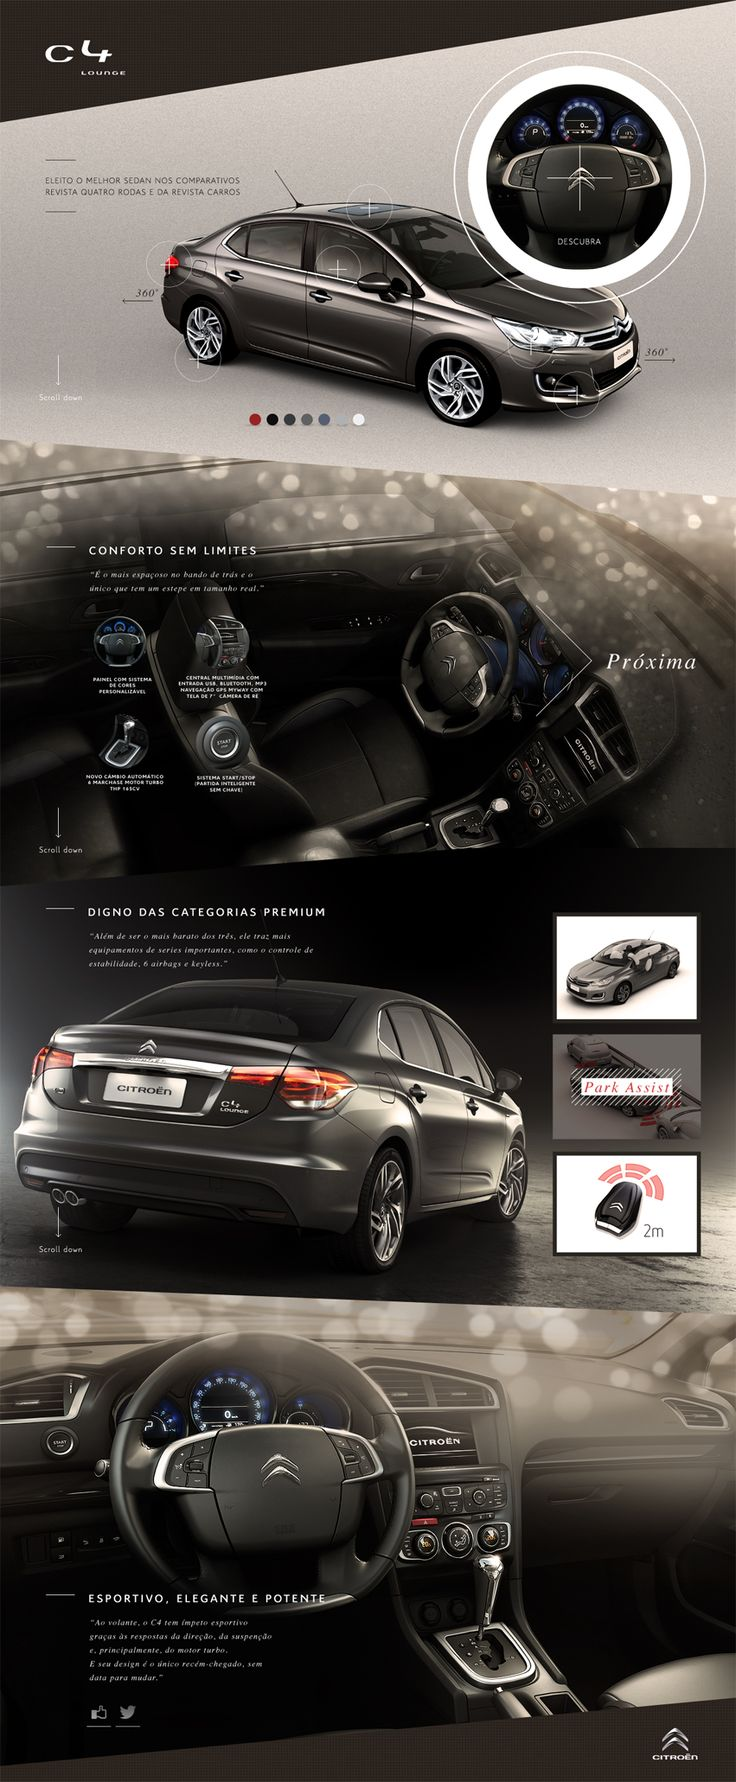 Cool Automotive Web Design. Citreon. #automotive #webdesign [http://www.pinterest.com/alfredchong/]